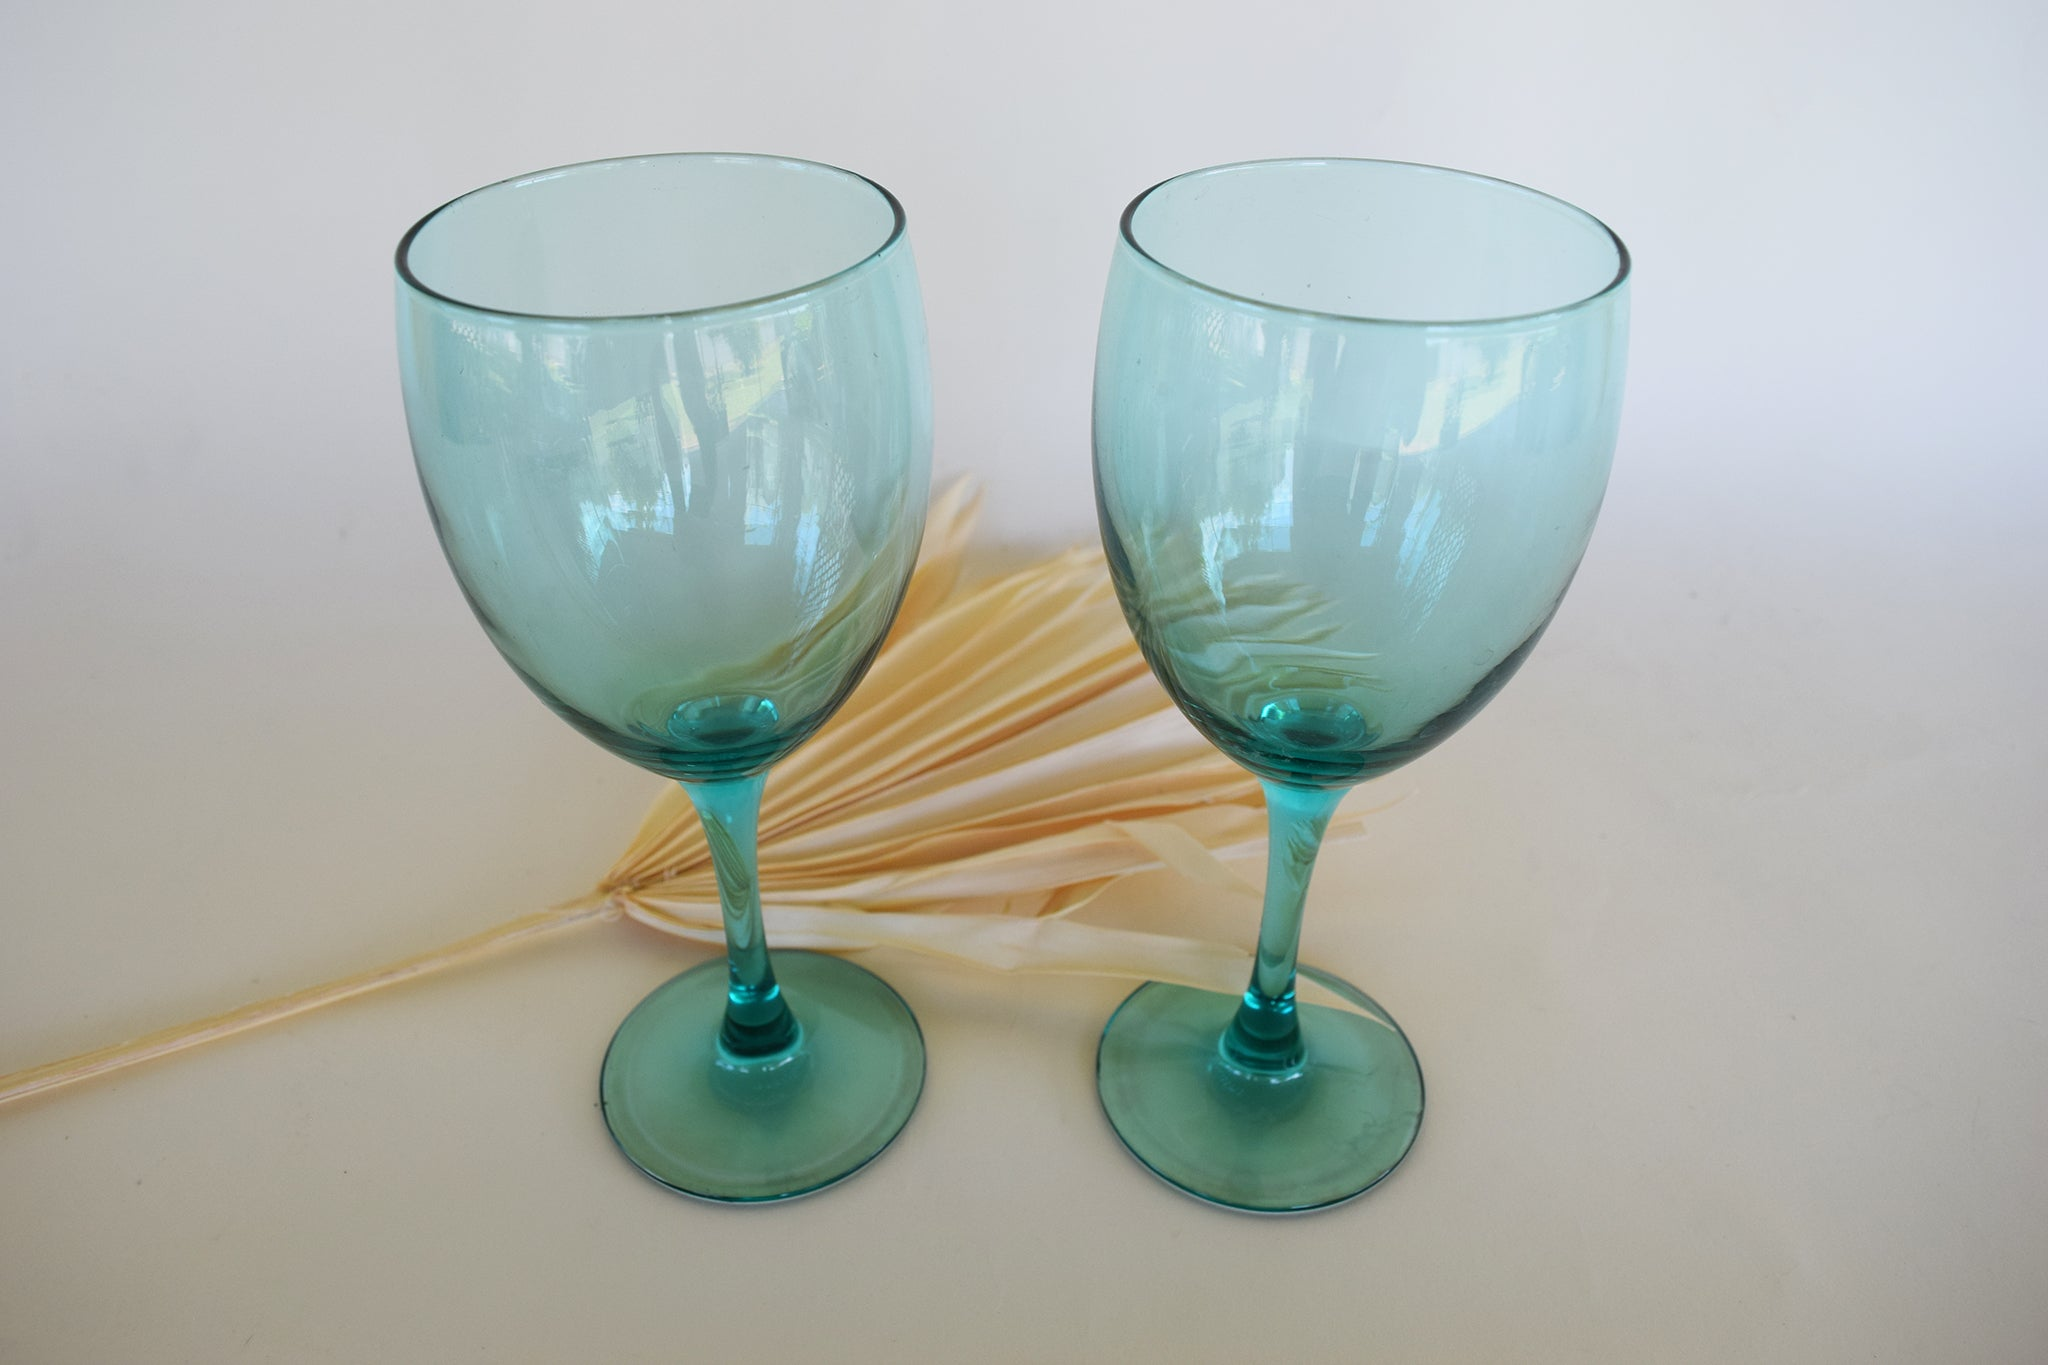 Vintage French Luminarc Wine Glasses